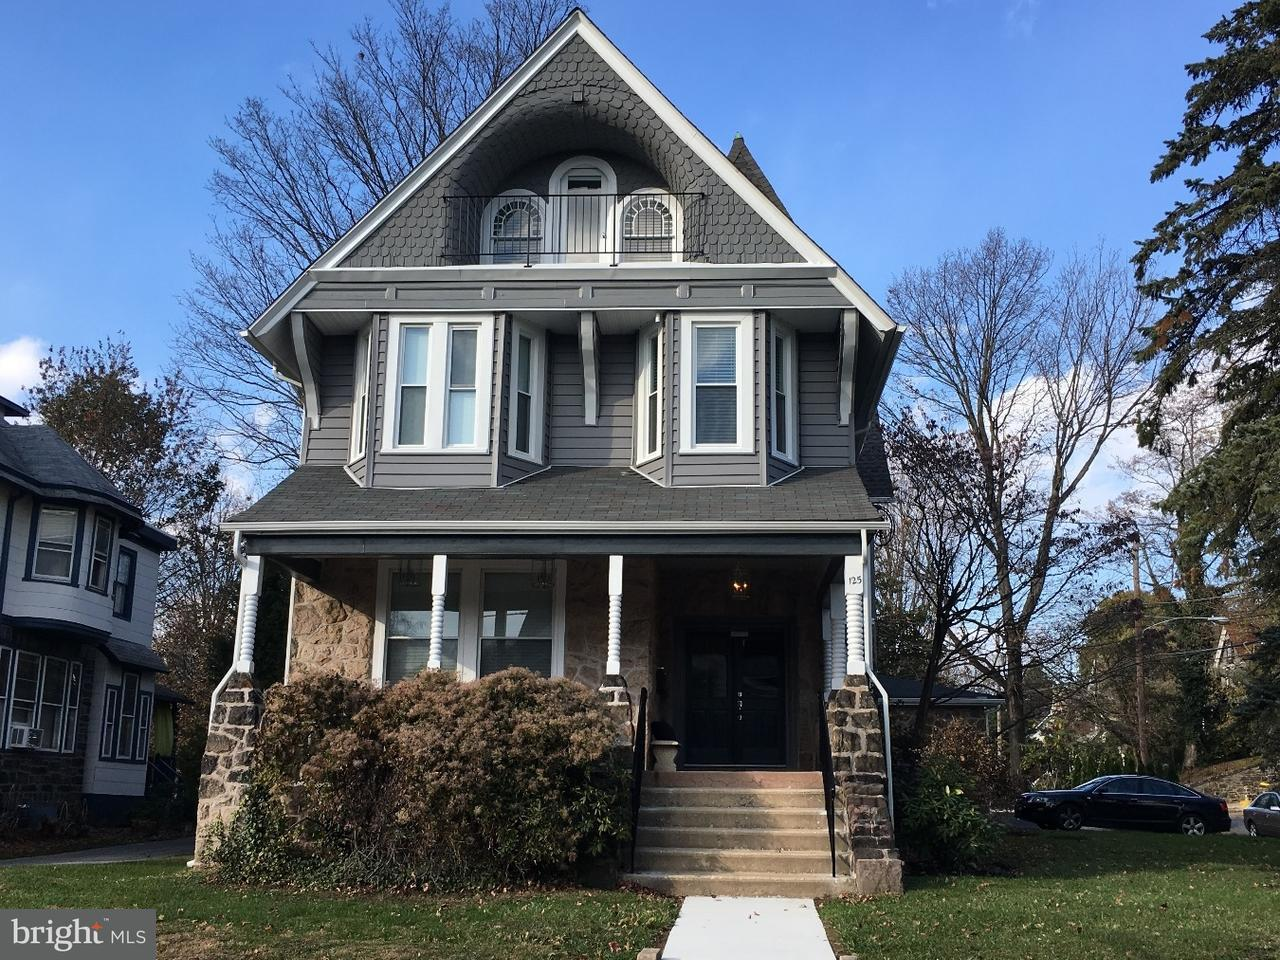 125  Windsor Narberth, PA 19072